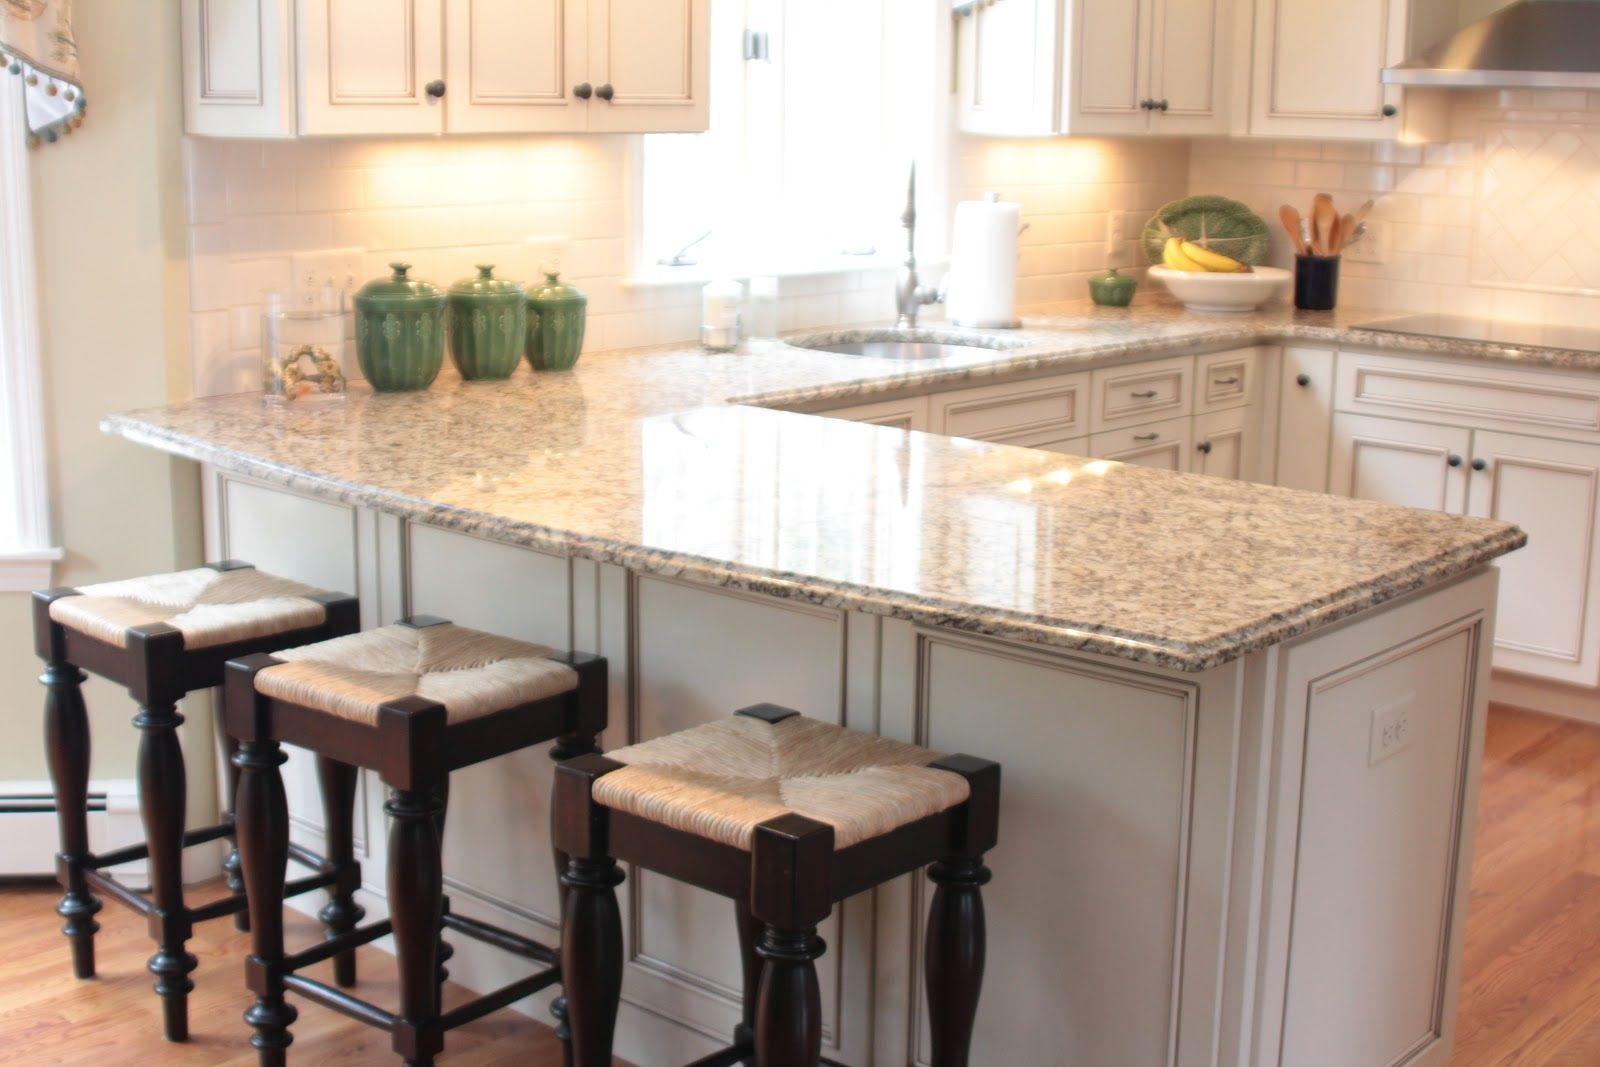 Most Popular Granite Colors For Kitchens Most Popular Granite Countertops